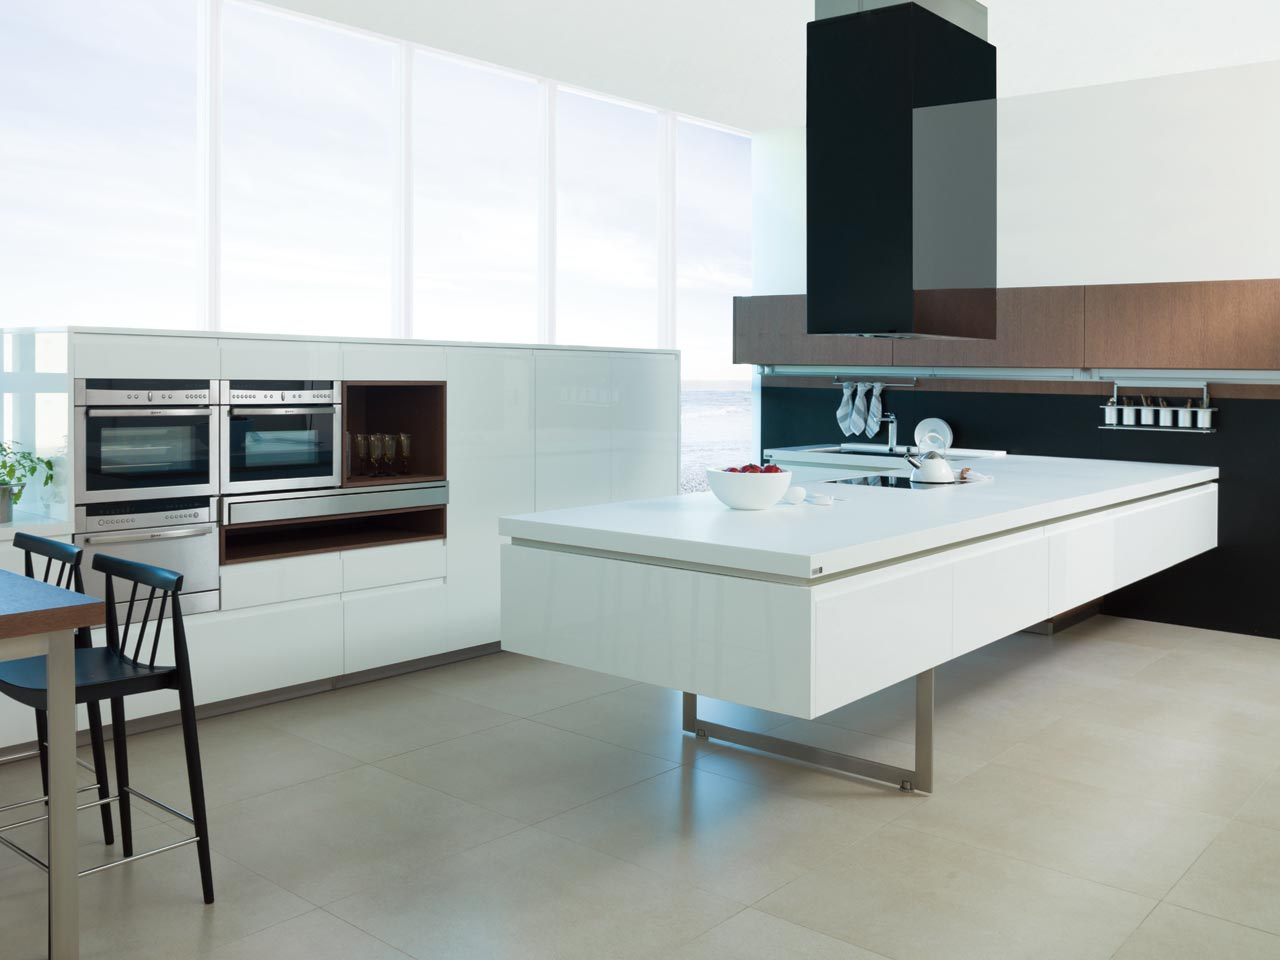 Cocina style contemporaneo color marron, blanco, gris, negro, plateado